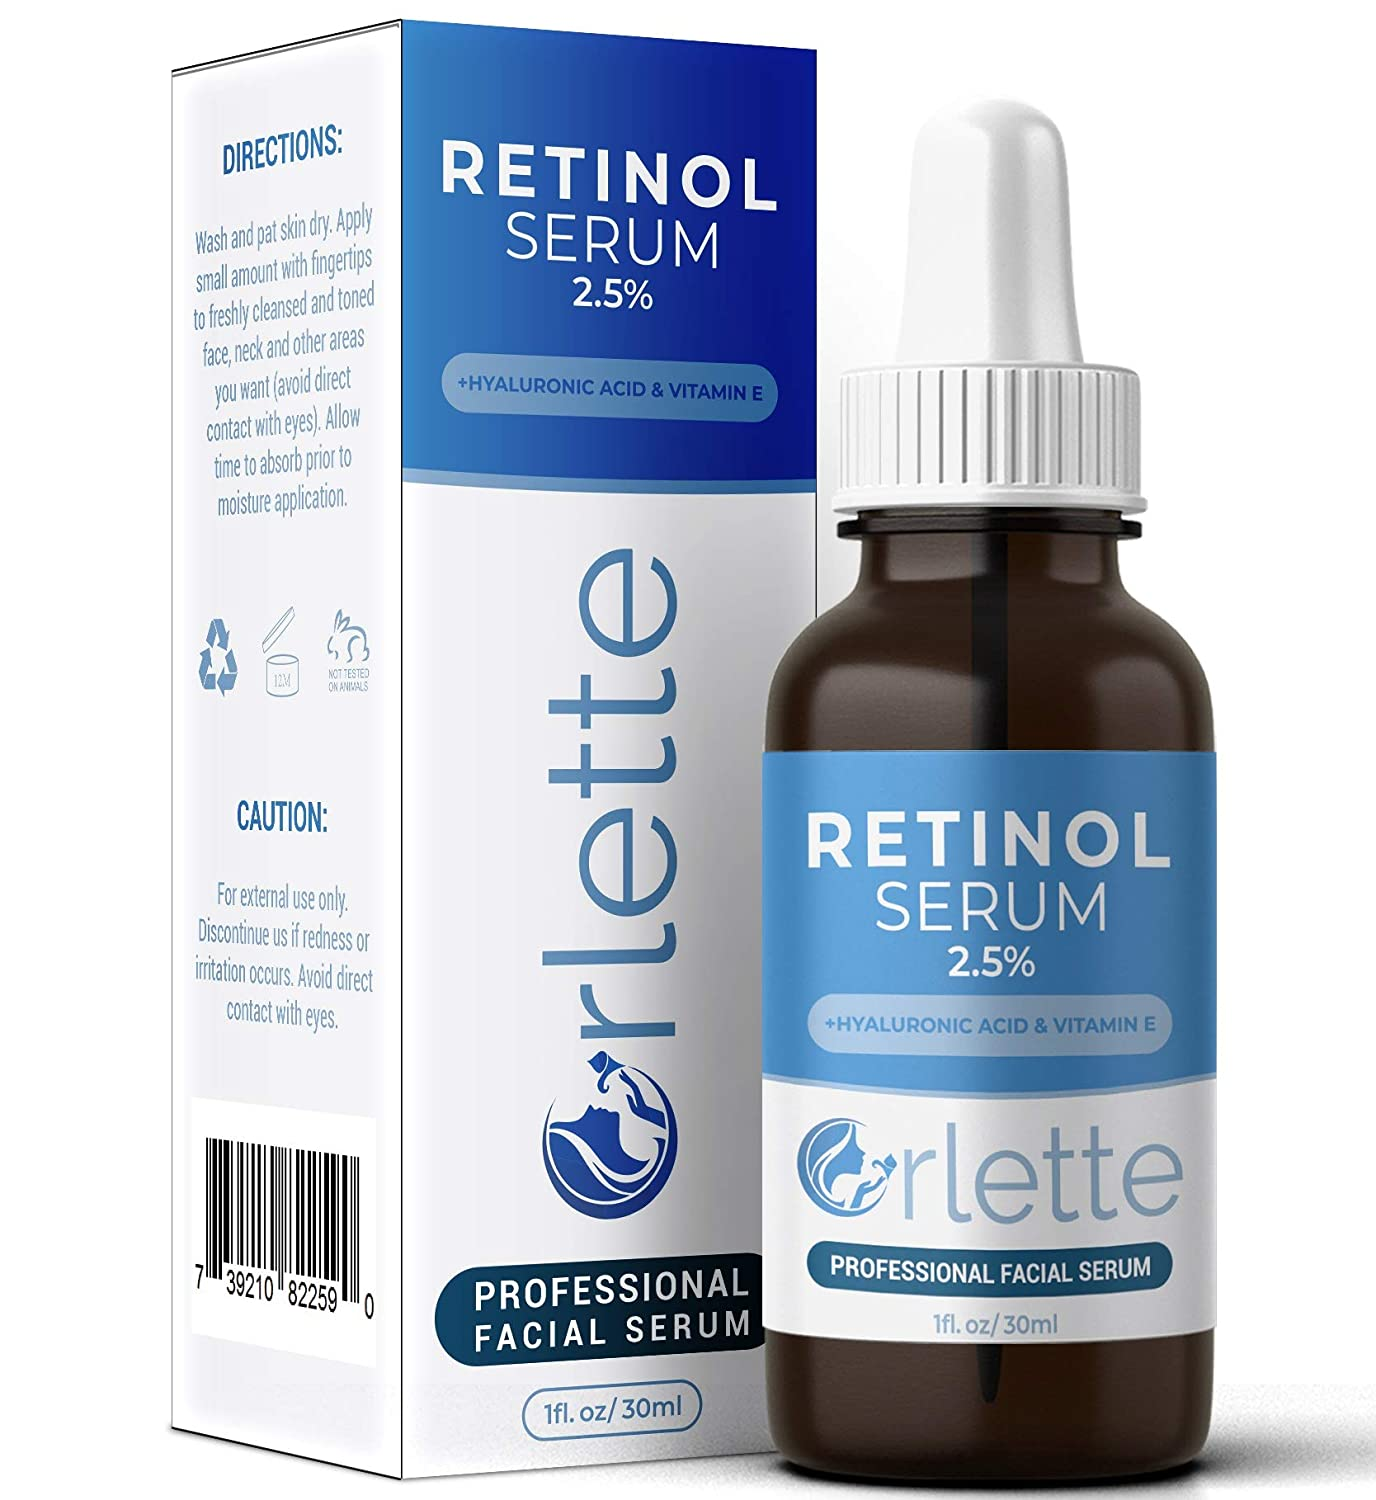 Orlette Retinol Serum 2.5% - Professional Grade Skincare - Vitamin A and E, Hyaluronic Acid - Anti-Aging, Hydrating Skin and Face Moisturizer - Wrinkle, Acne Spot, Pigmentation, Blemish Remover - 30ml